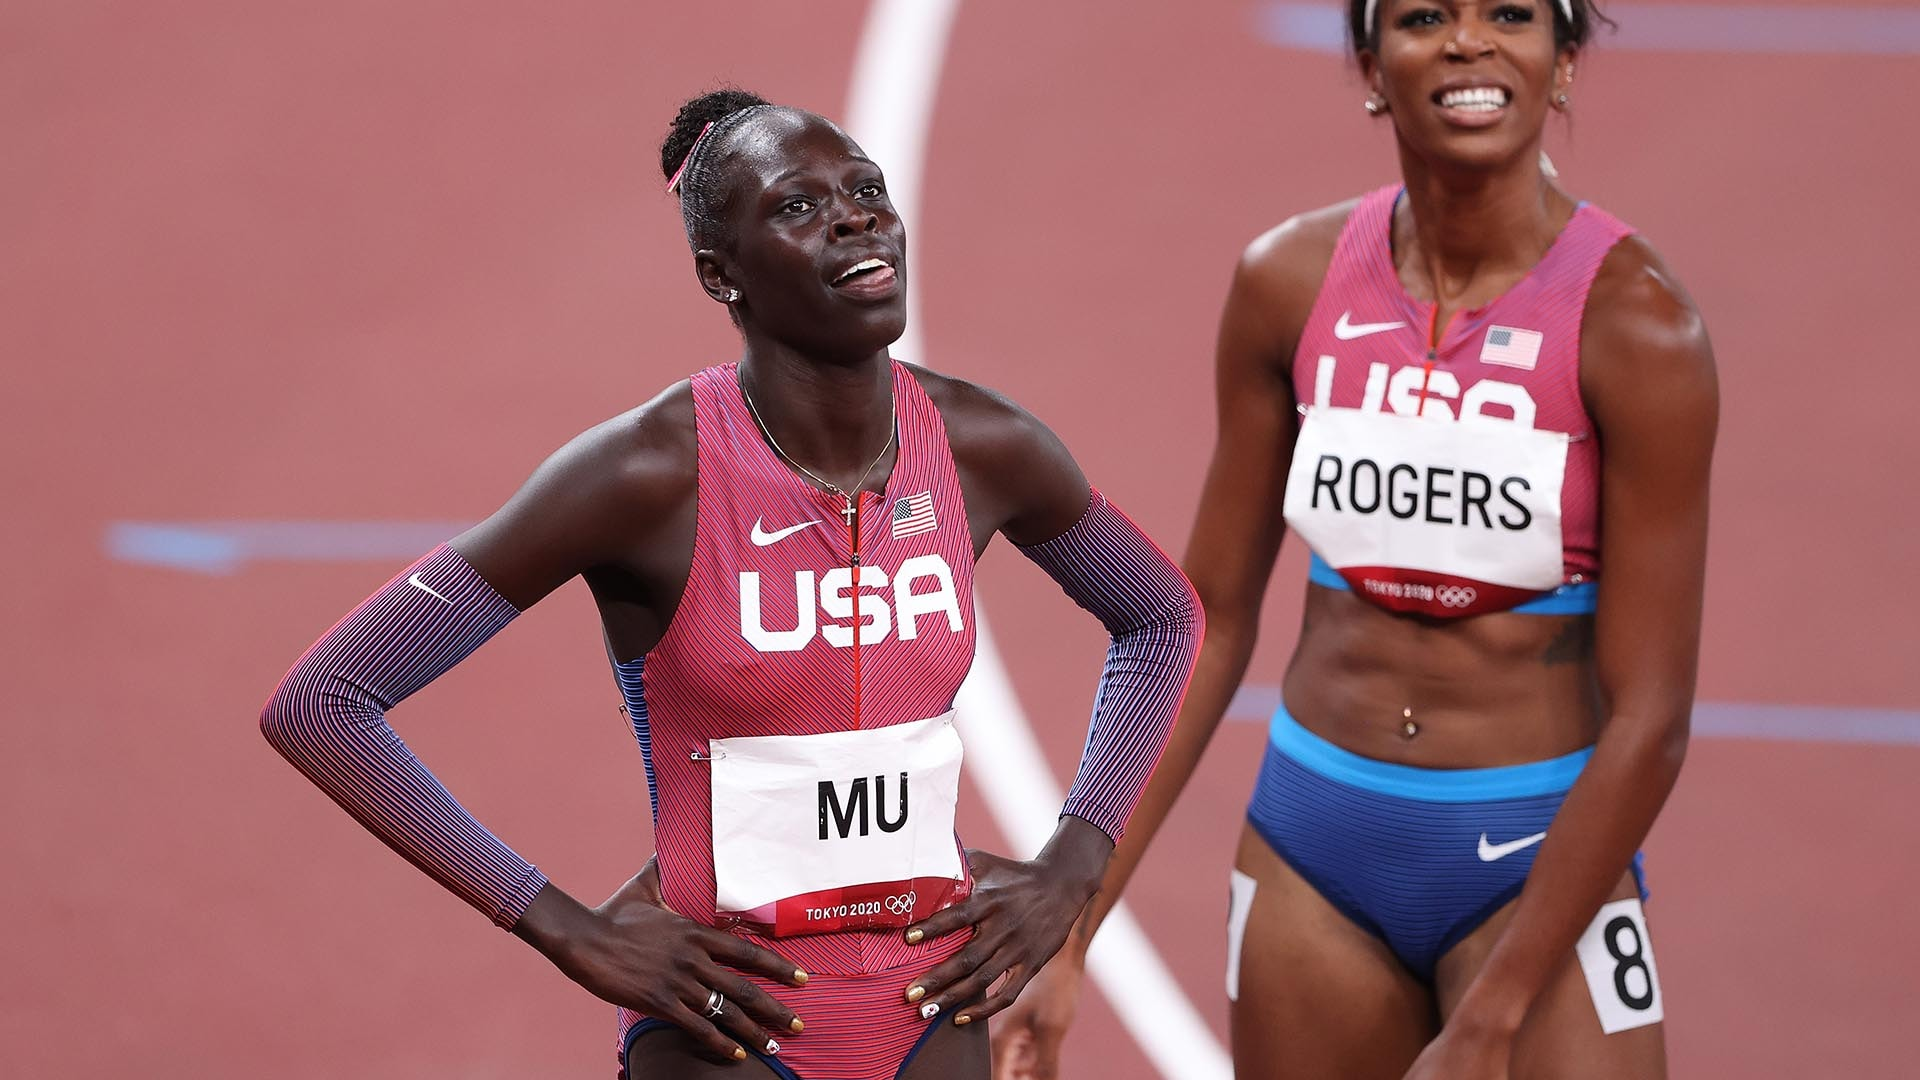 Image for Athing Mu, 19, ends half-century U.S. drought with women's 800m gold